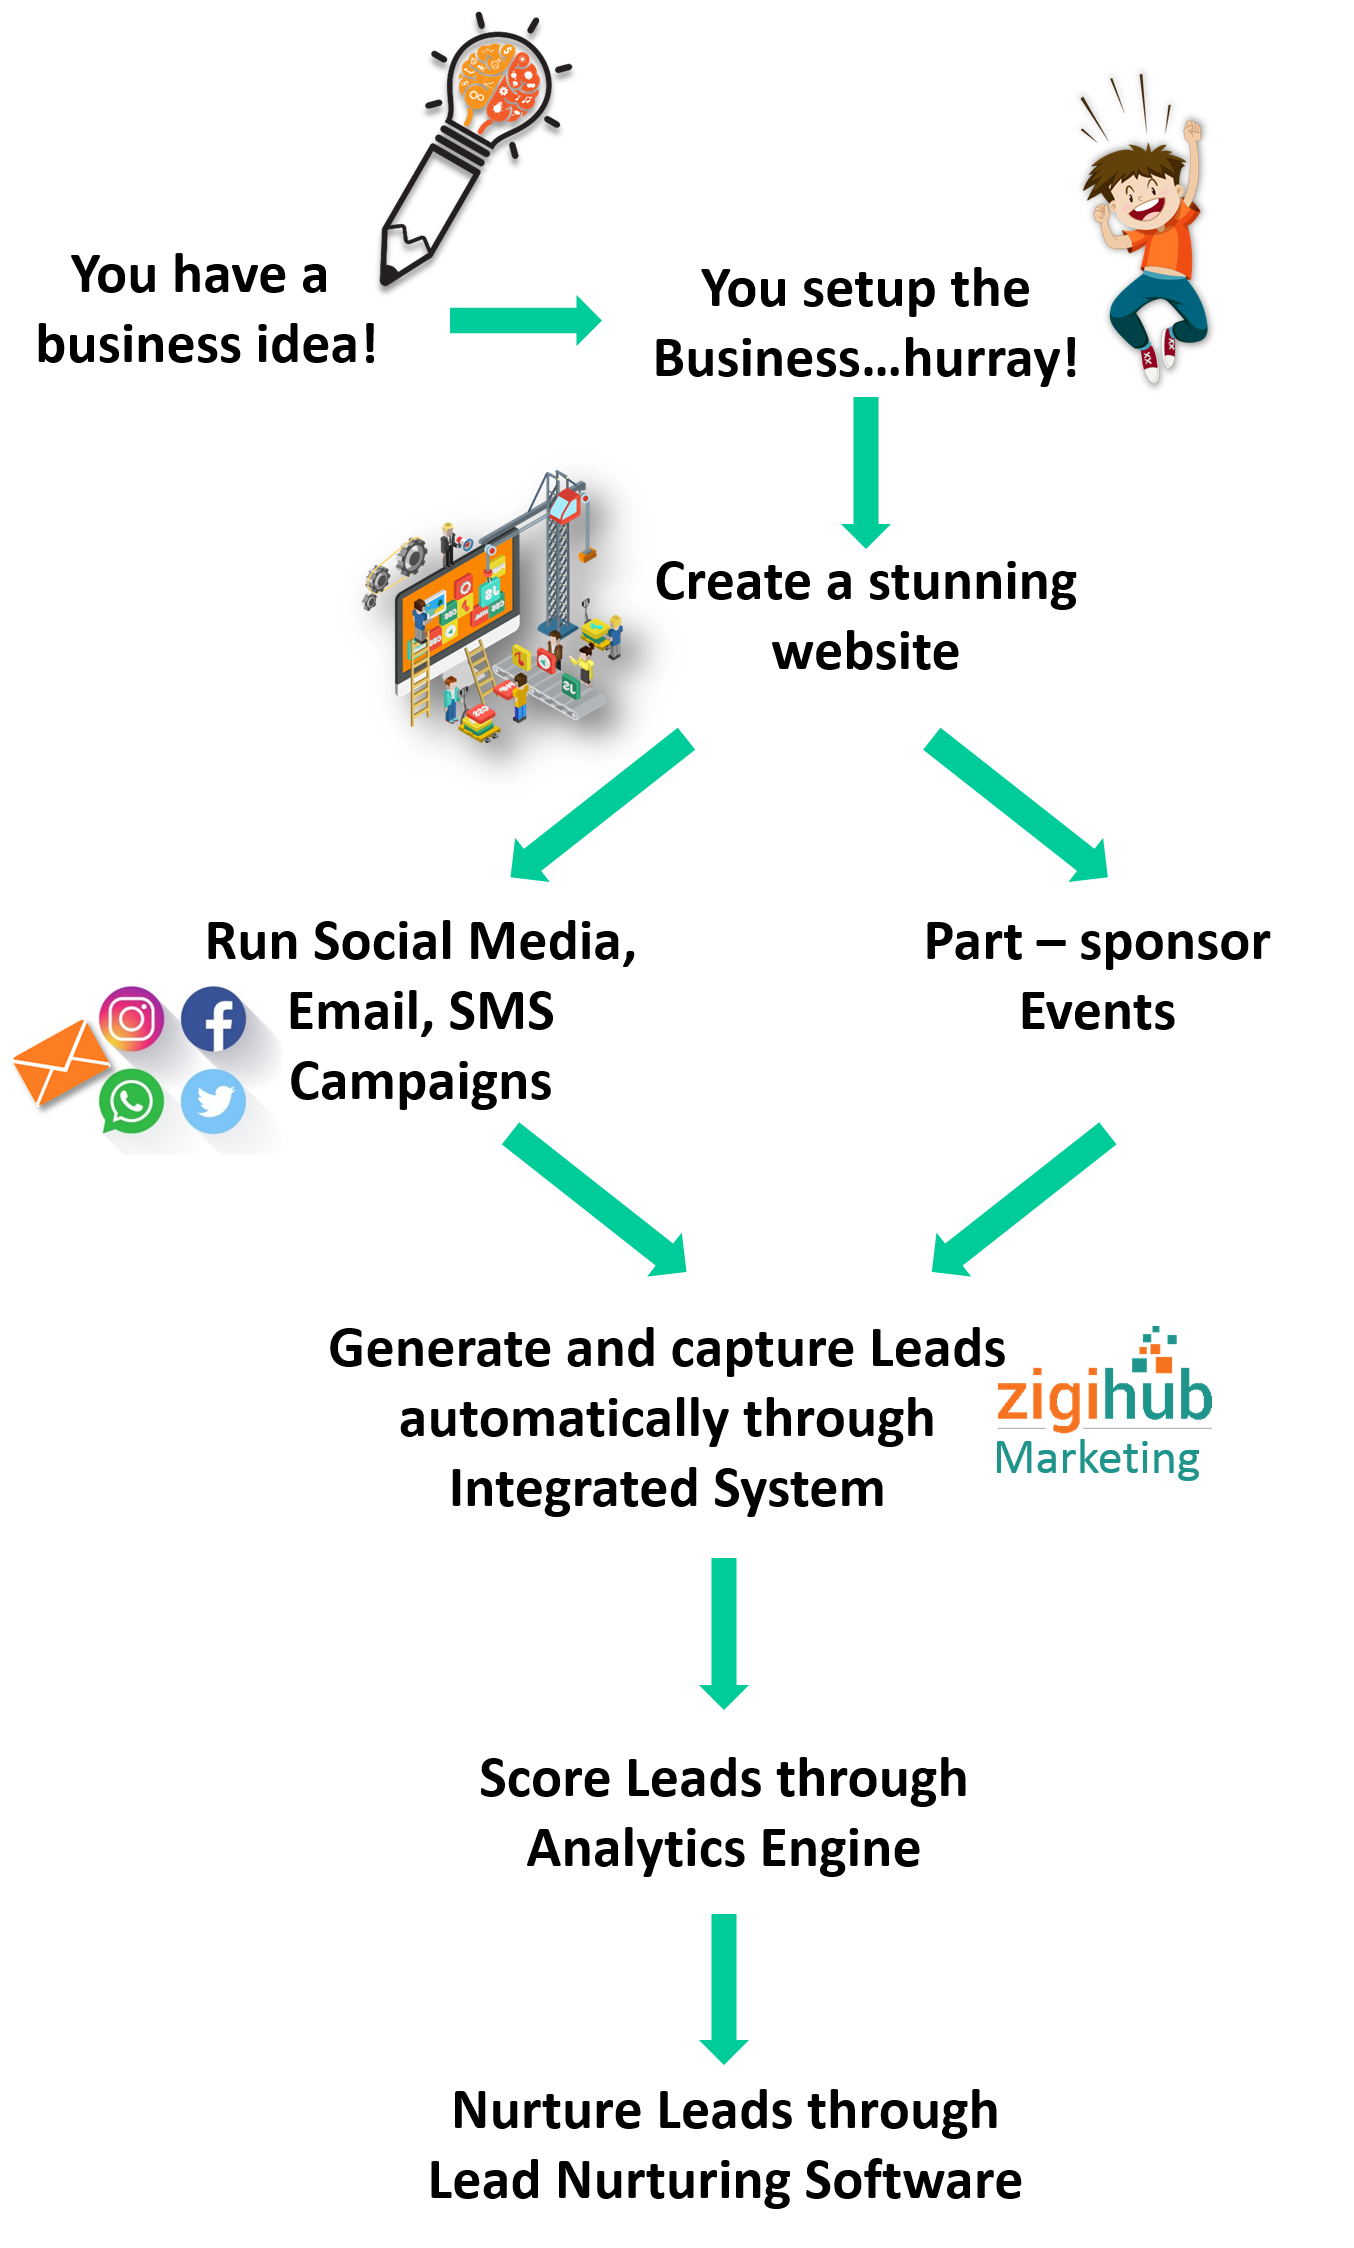 Marketing-Automation-for-startups-and-SMEs-flow-chart